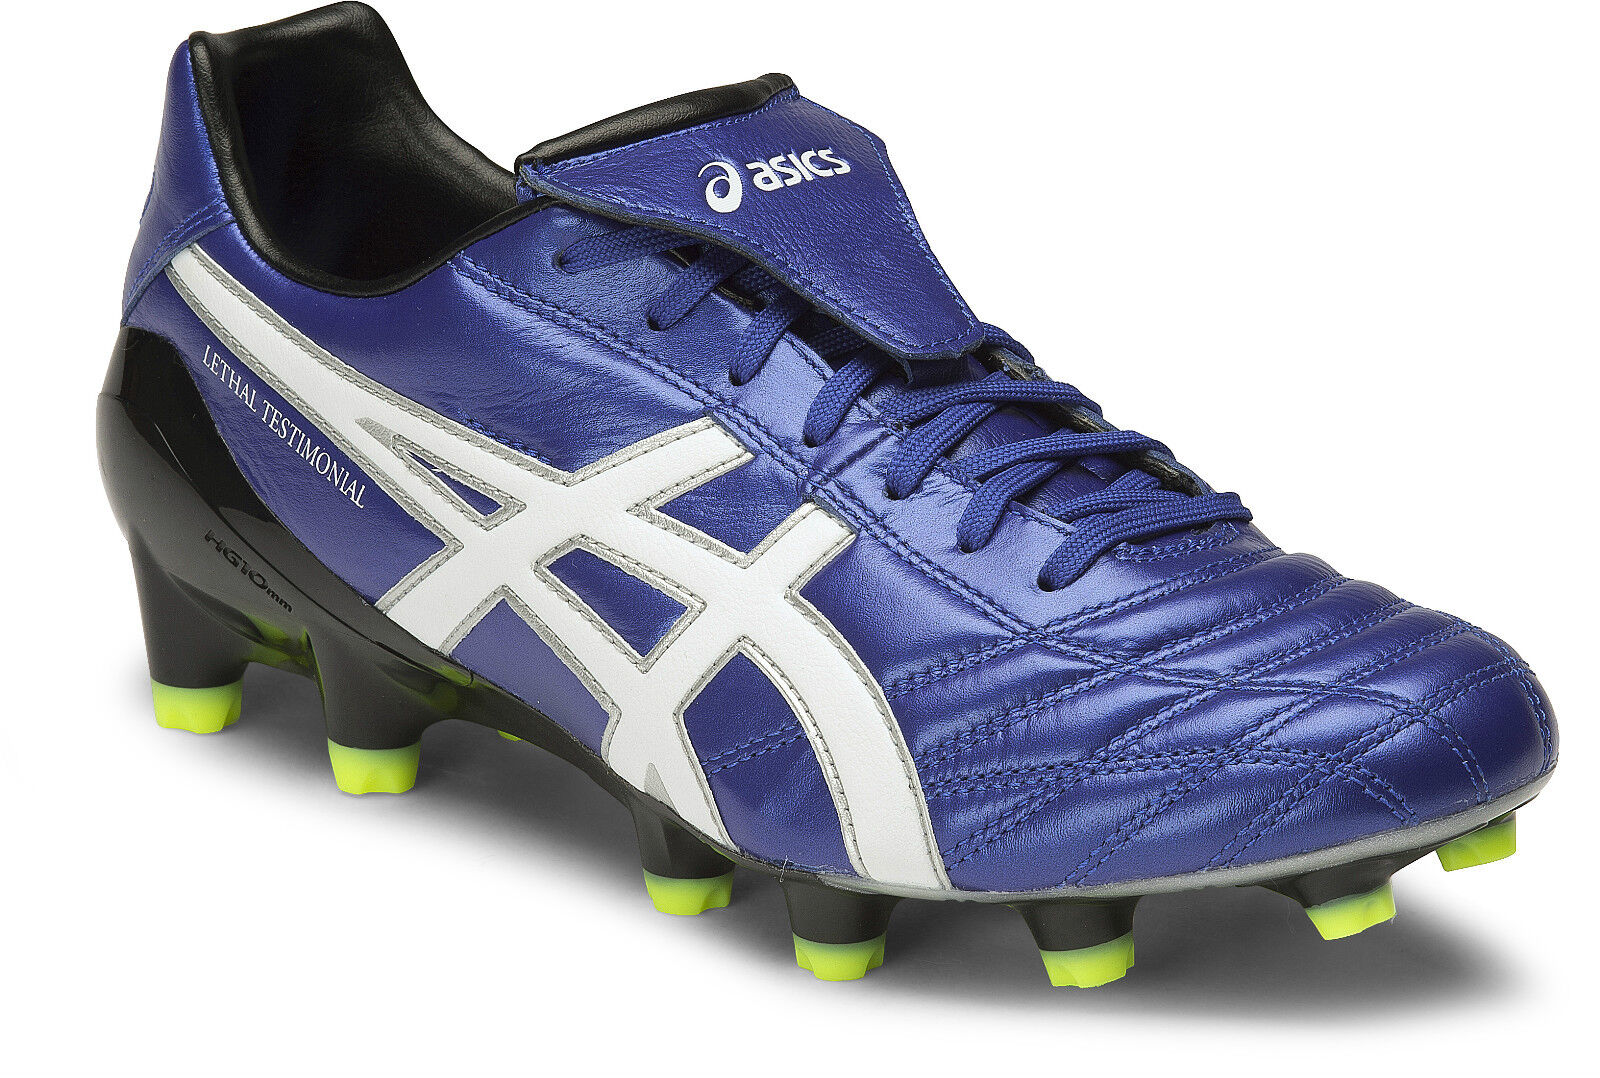 Asics Lethal Testimonial 4 IT Mens Football chaussures (D) (4201) + Free Aus Delivery